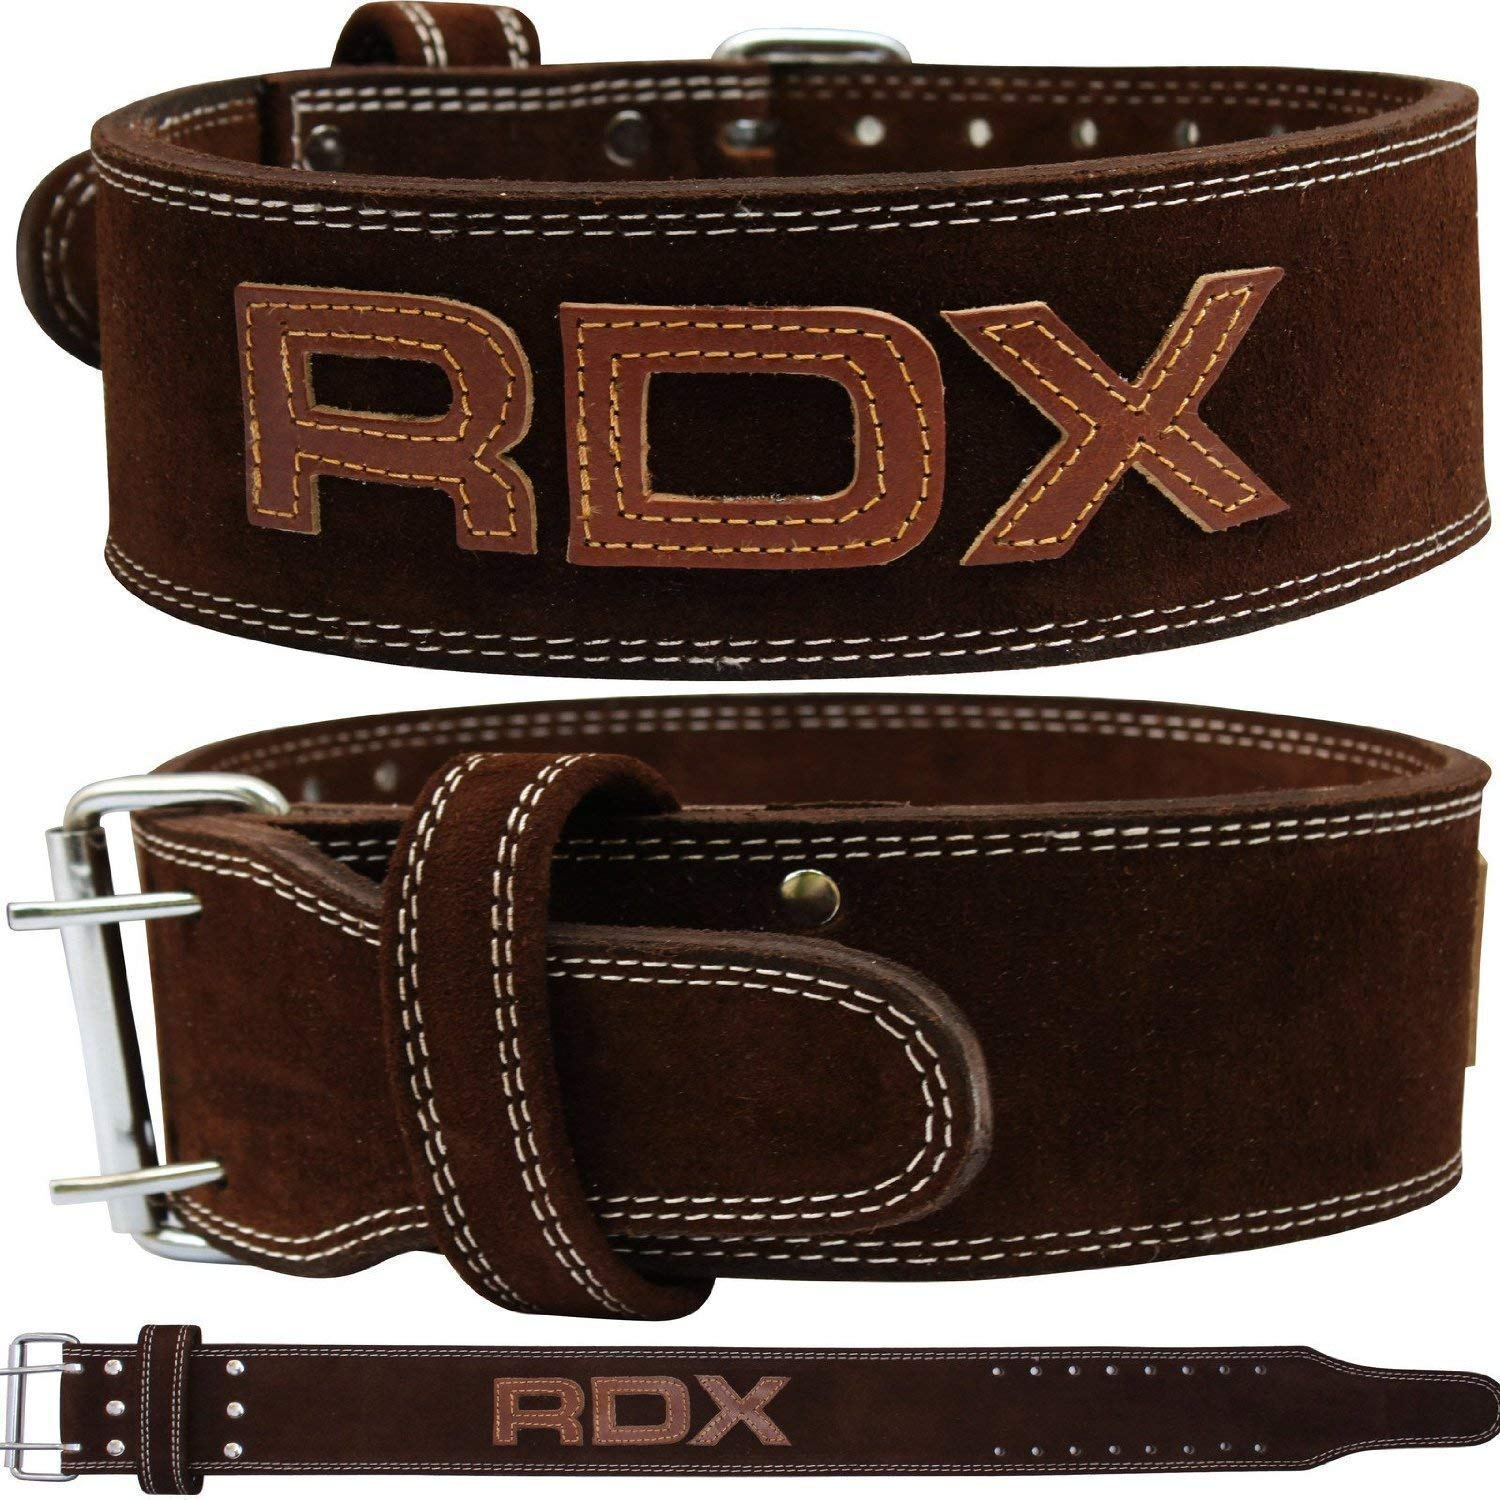 "RDX Powerlifting Belt for Weight Lifting Gym Training - Double Prong Leather Belt 10mm Thick 4"" Lumbar Back Support"